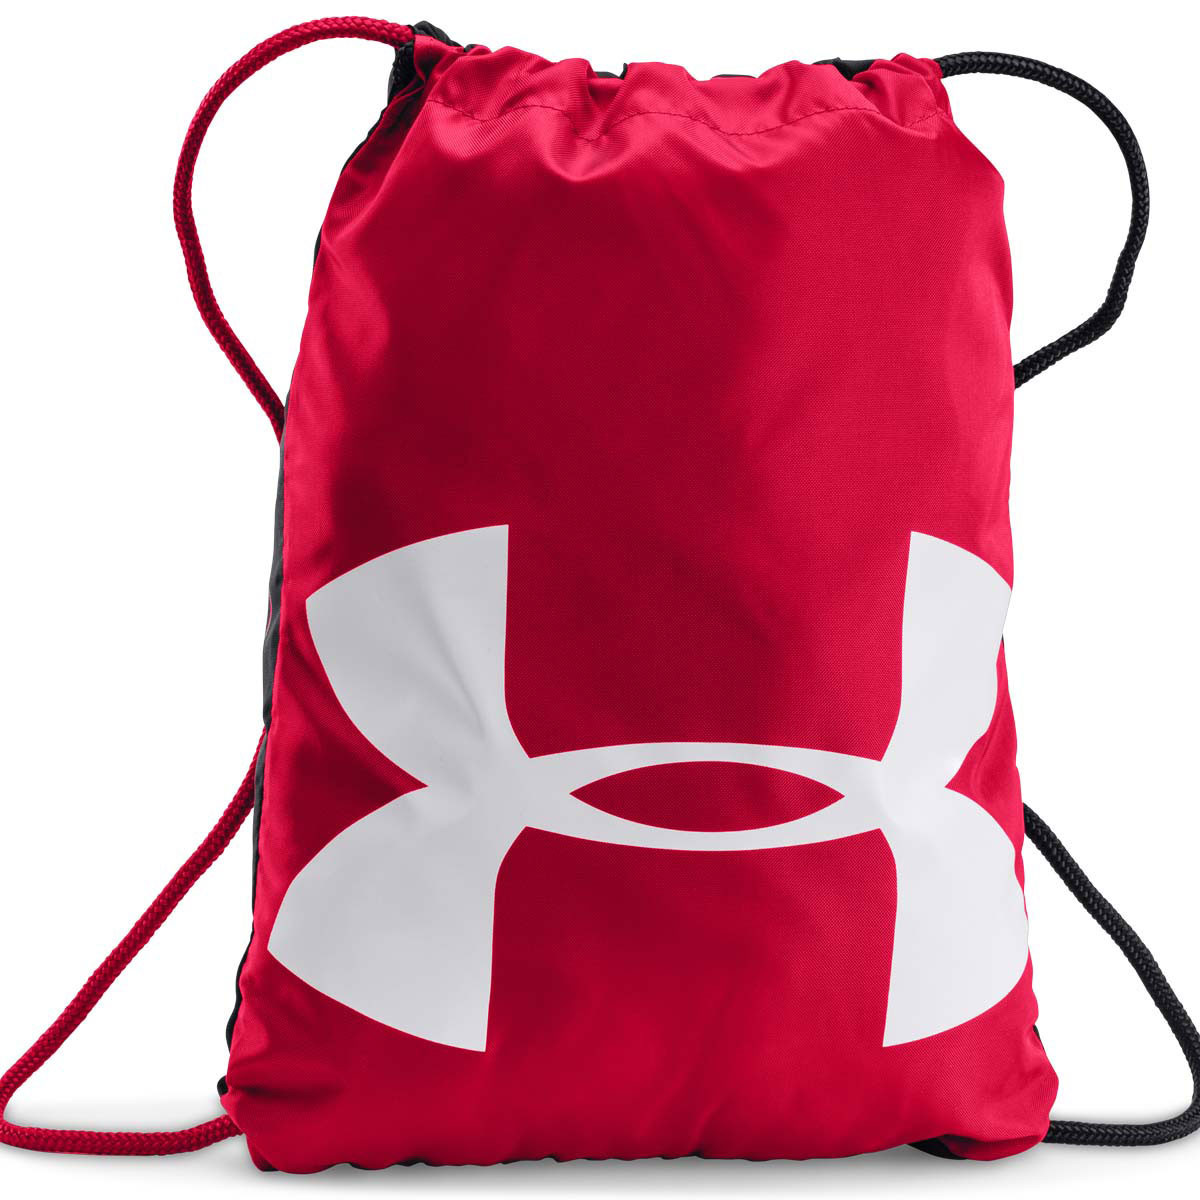 d18cf2b3a698 Under Armour 2019 UA Ozsee Sackpack Drawstring Bag